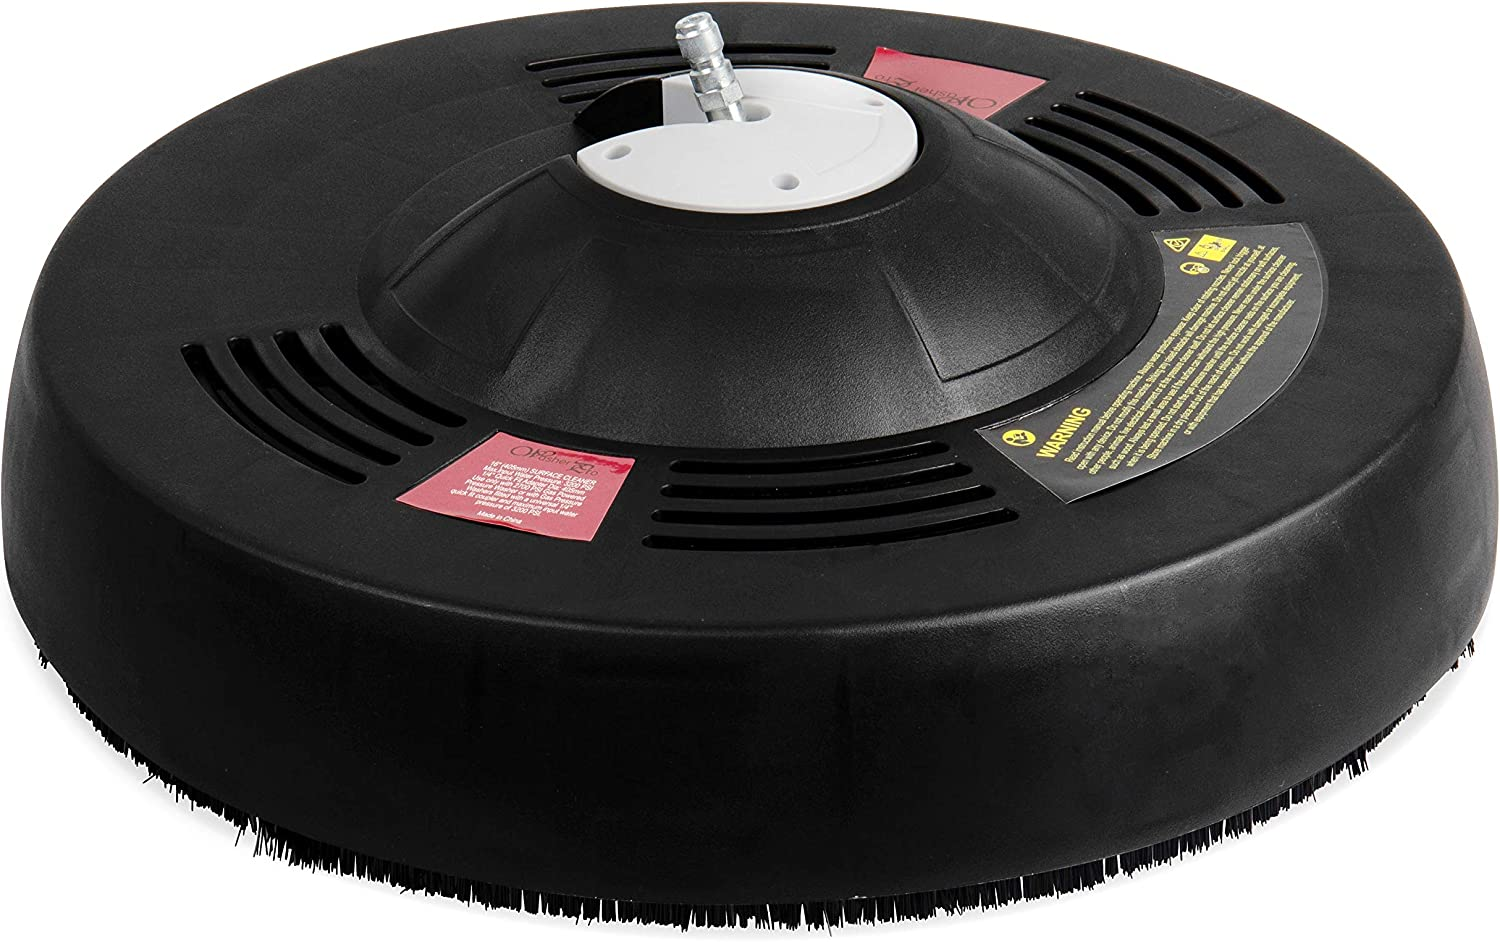 Washer Pro Pressure Accessories: Cheap mail order specialty store 15 Washe Disc Power Ranking TOP20 Inch